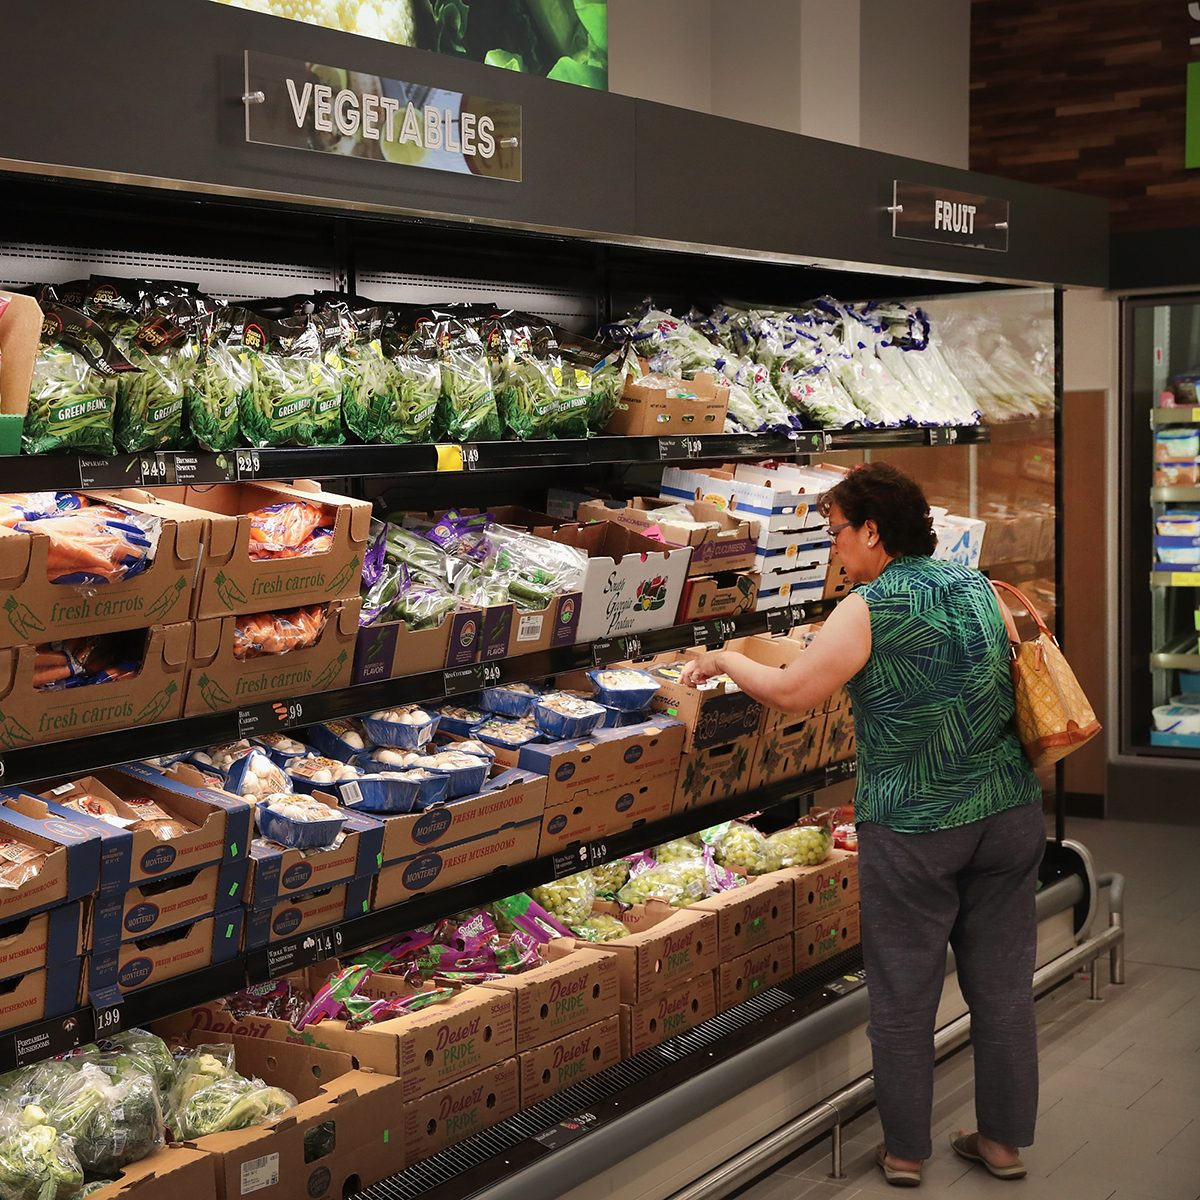 CHICAGO, IL - JUNE 12: Customers shop at an Aldi grocery store on June 12, 2017 in Chicago, Illinois. Aldi has announced plans to open 900 new stores in the United States in the next five years. The $3.4 billion capital investment would create 25,000 jobs and make the grocery chain the third largest in the nation behind Wal-Mart and Kroger. (Photo by Scott Olson/Getty Images)